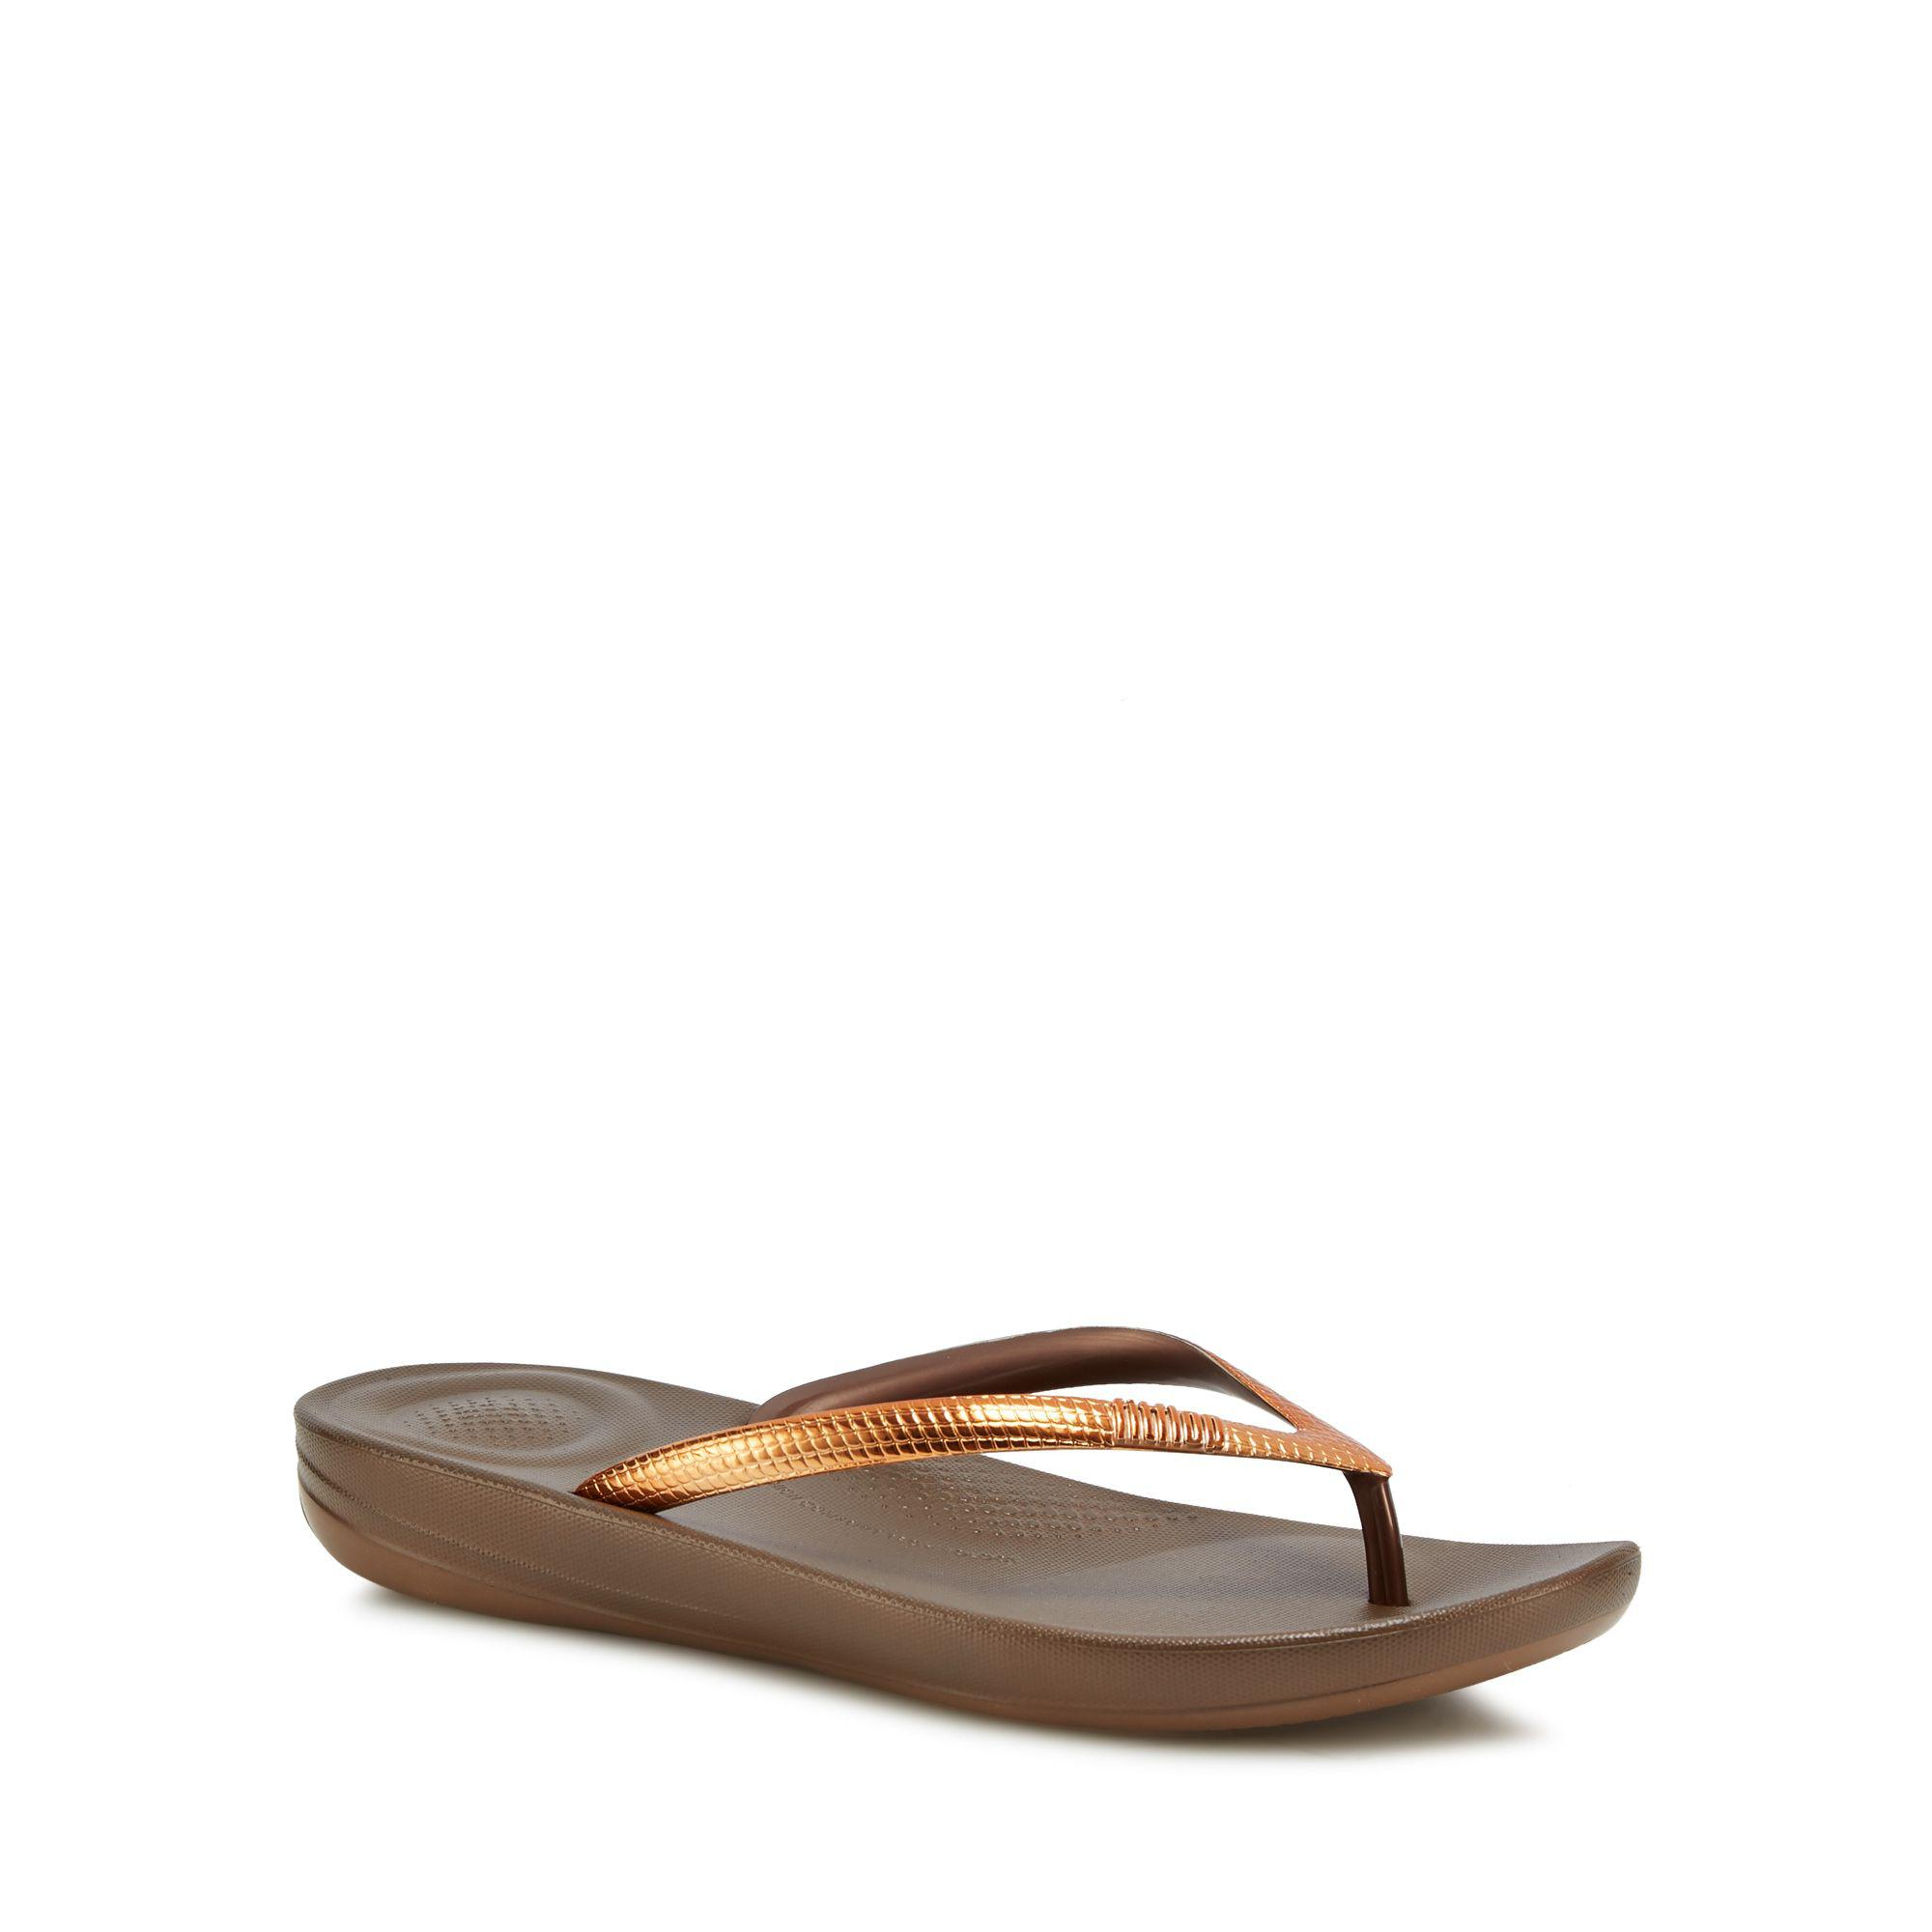 3c515fd6fef477 Fitflop Bronze  mirror  Iqushion Flip Flops in Brown - Lyst